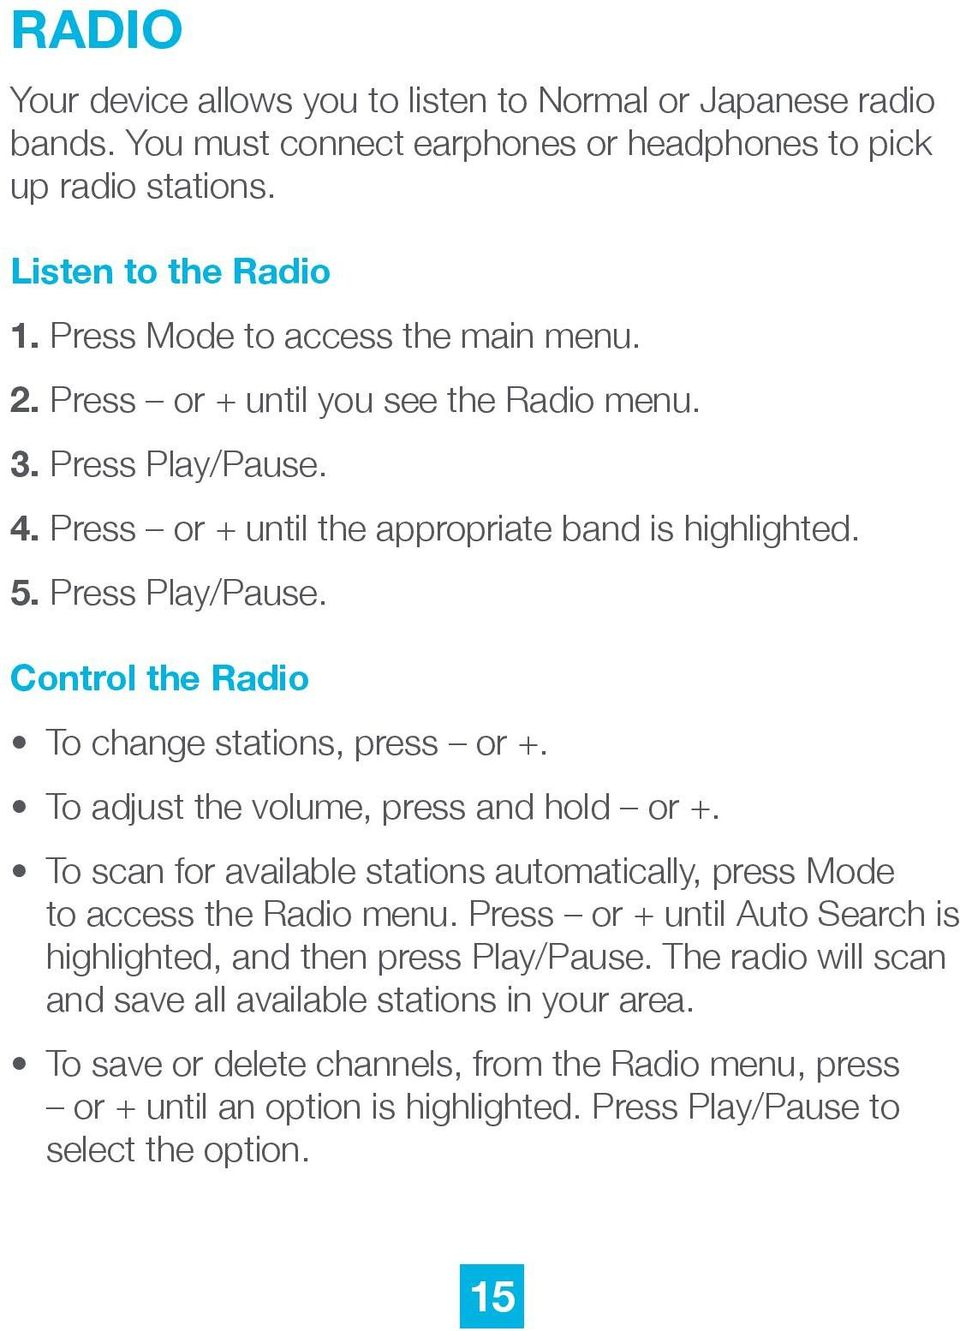 To adjust the volume, press and hold or +. To scan for available stations automatically, press Mode to access the Radio menu. Press or + until Auto Search is highlighted, and then press Play/Pause.